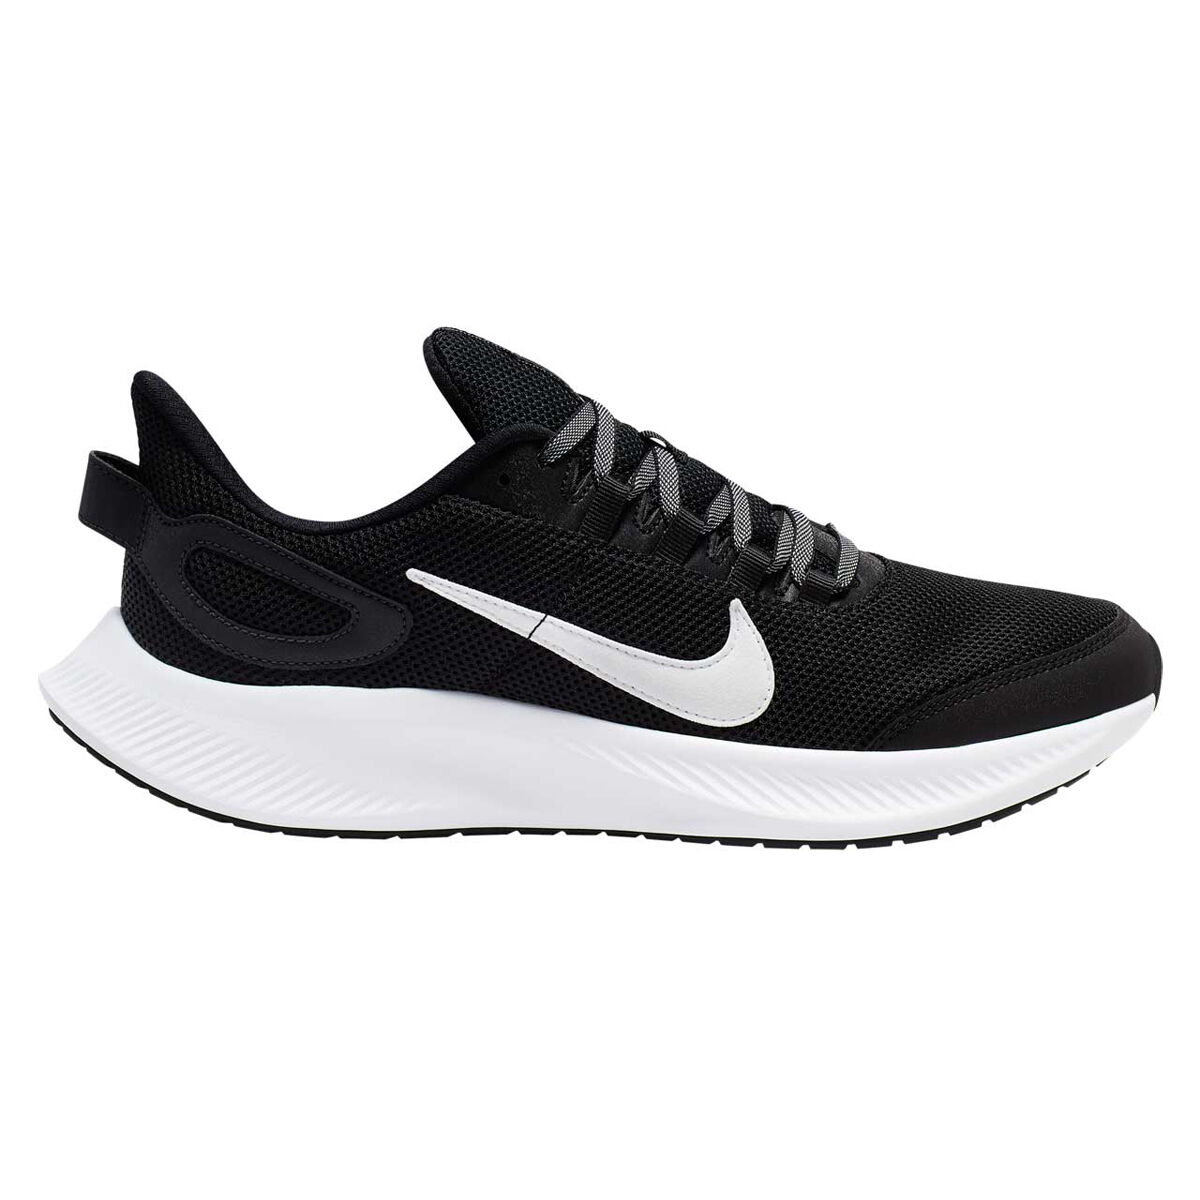 Nike Run All Day 2 Mens Running Shoes